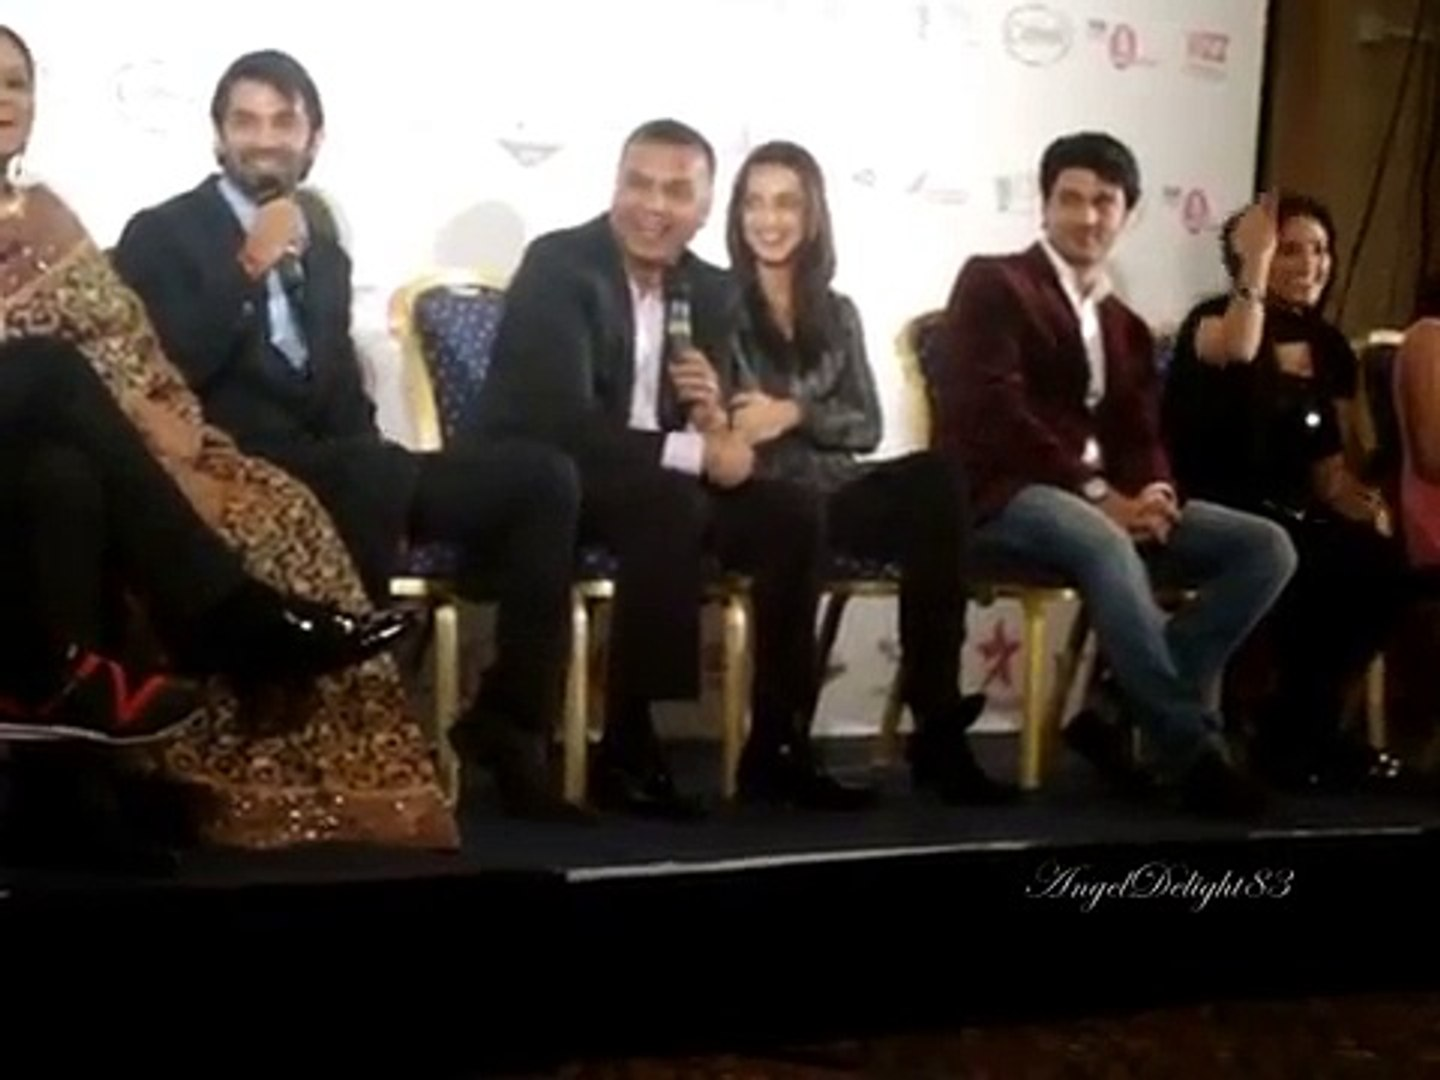 Sanaya Irani & Barun Sobti, Sarun SP Event 24th,25th Nov 2012 Birmingham UK part 3